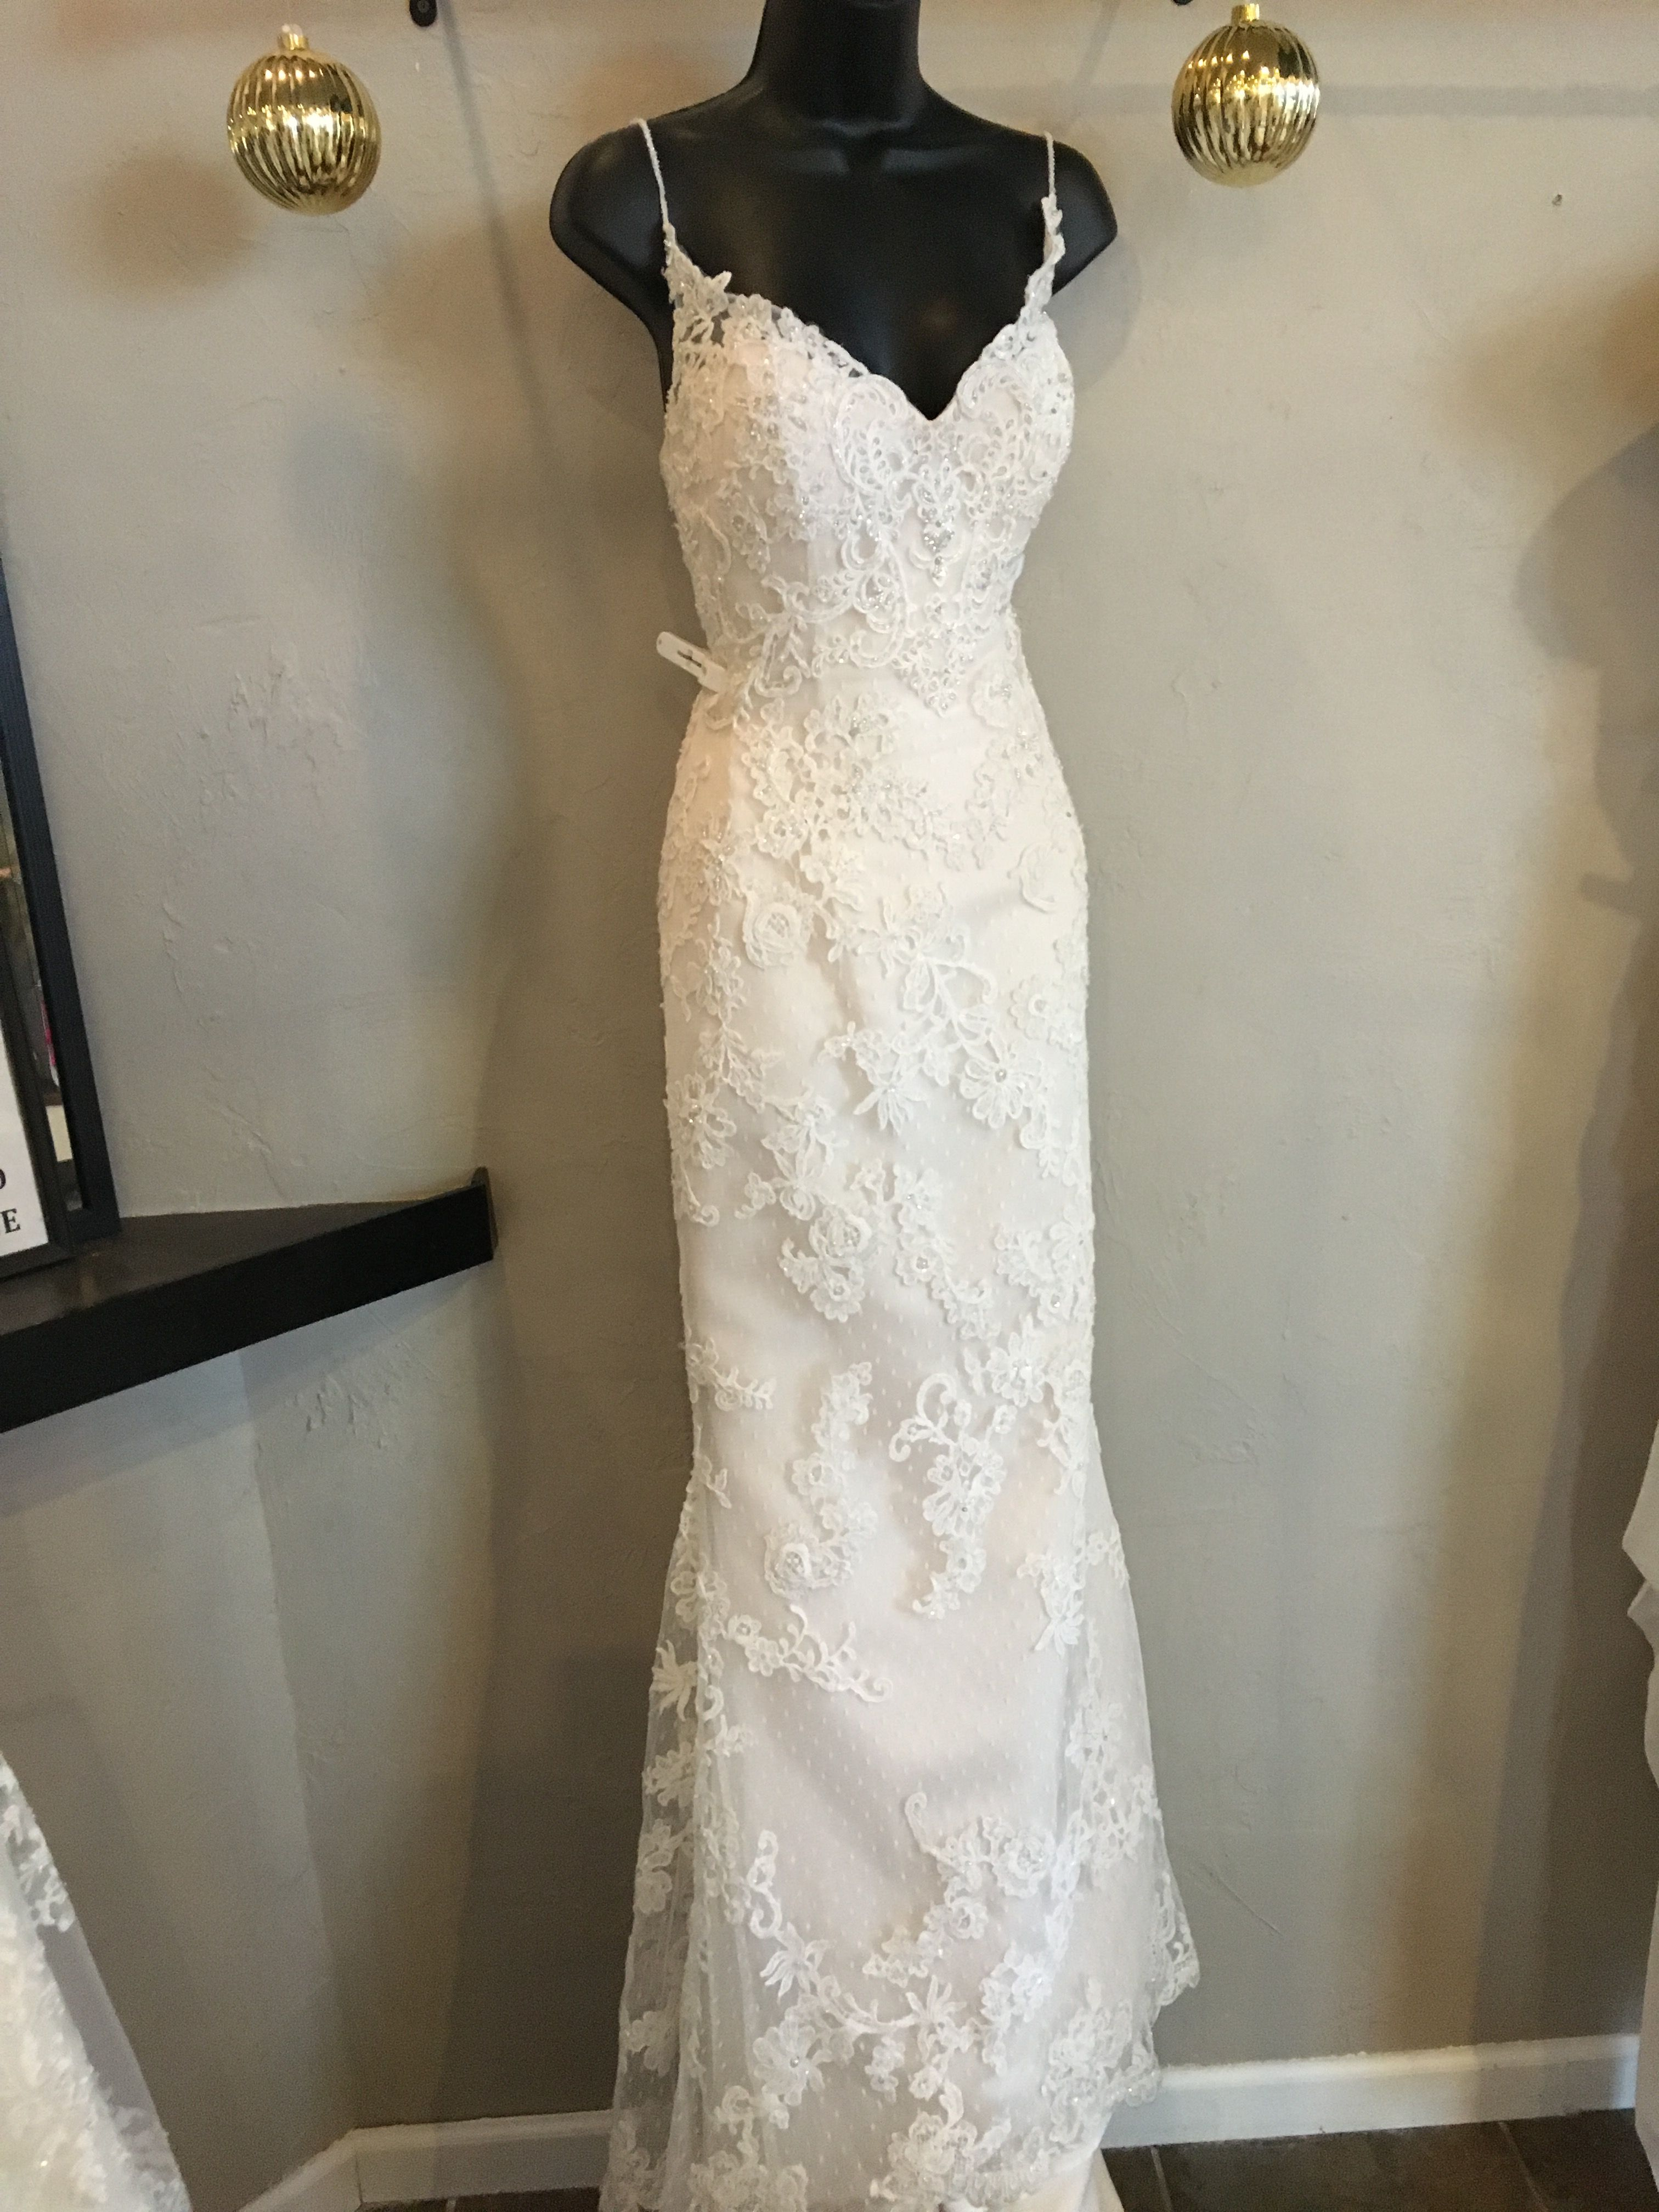 Champagne and ivory wedding dress  Germaineus Bridal This dress is pictured in champagneivory silver